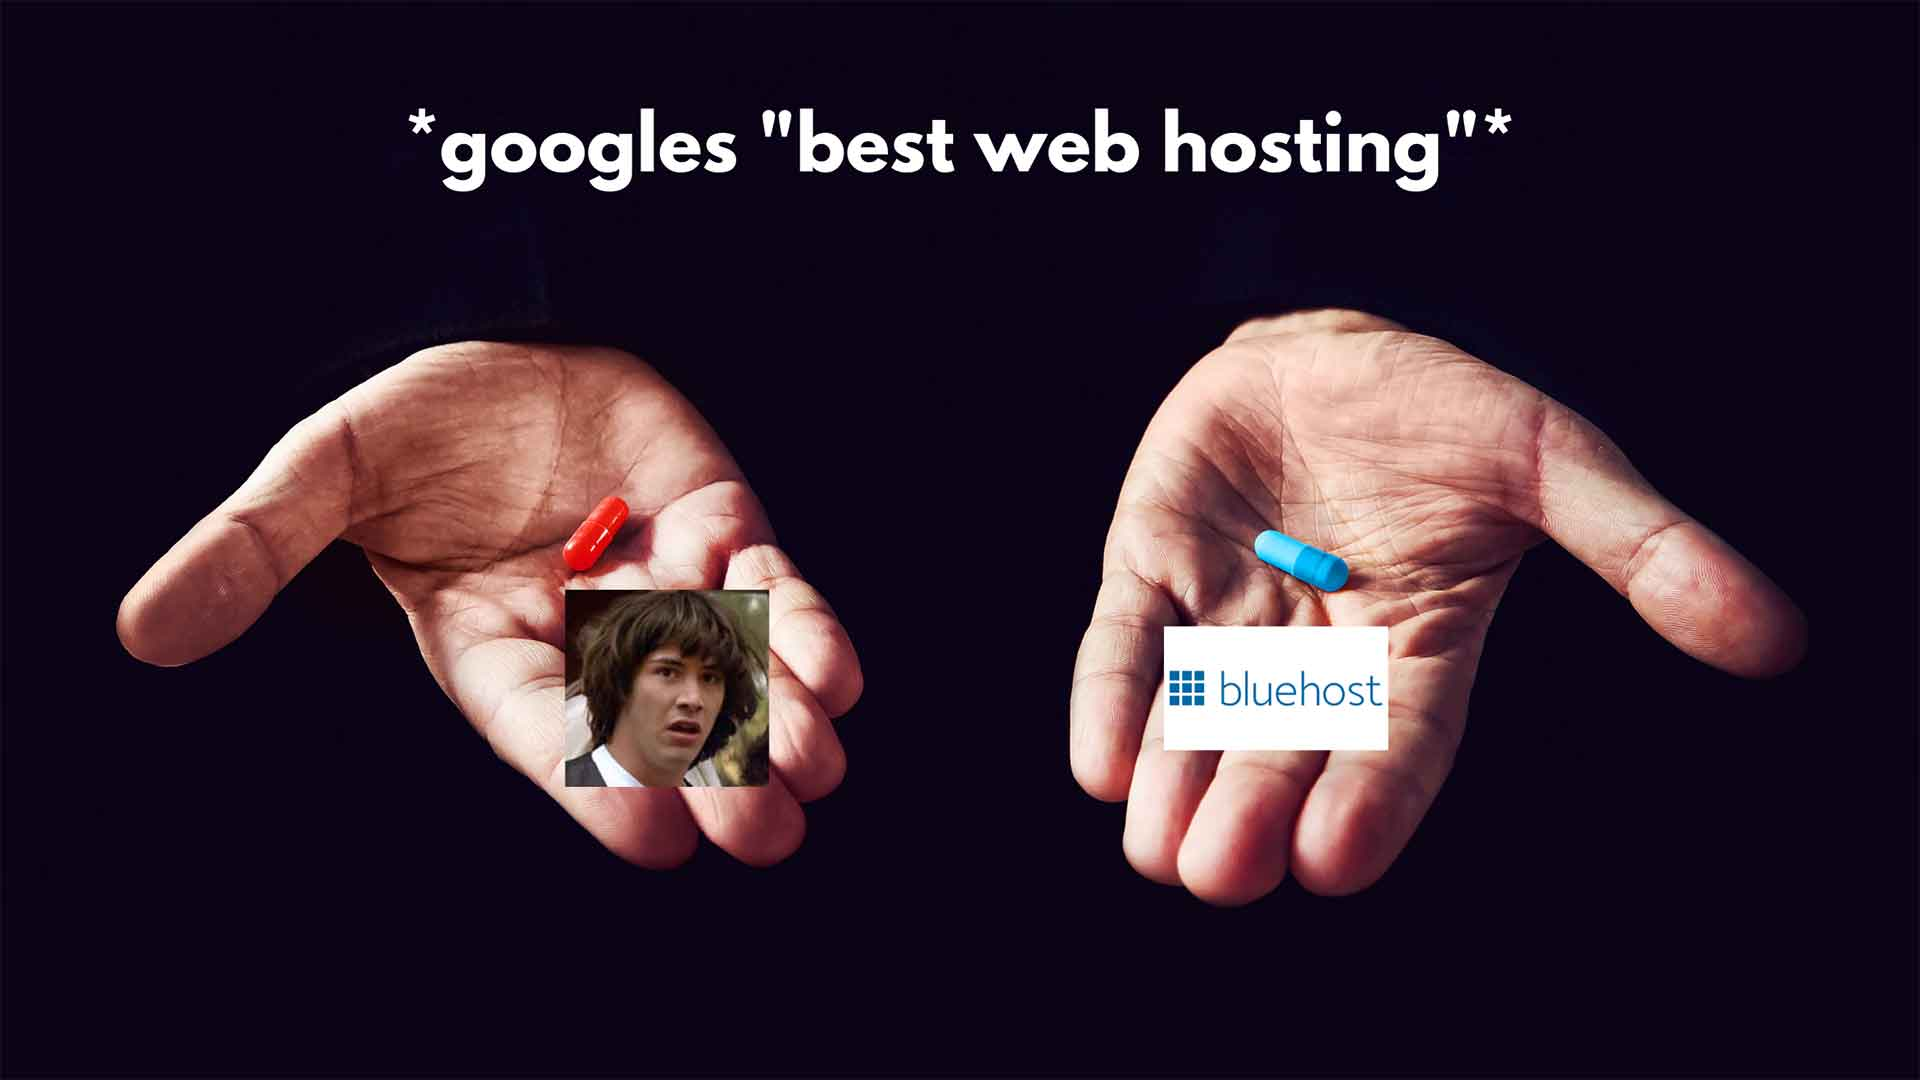 bluehost is the blue pill of the matrix